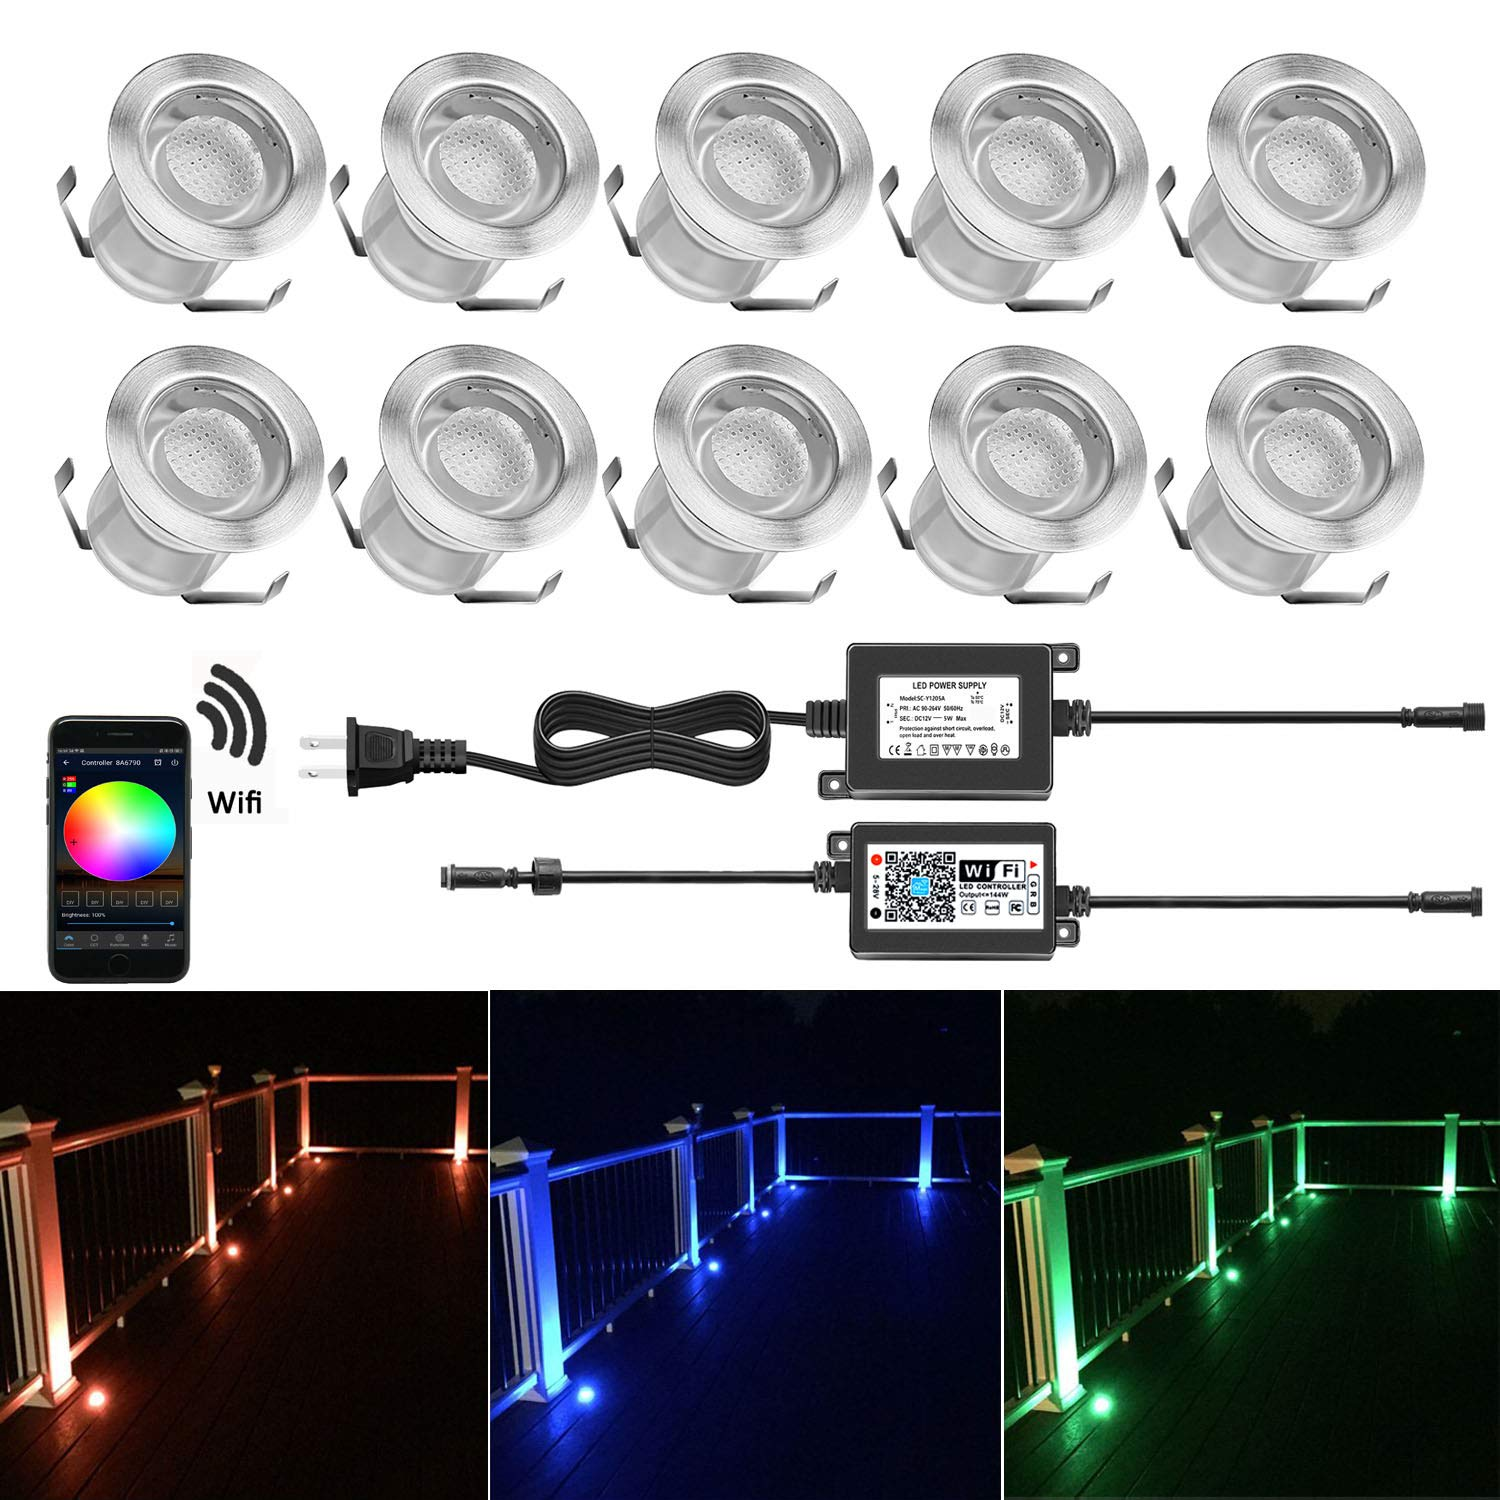 QACA WIFI Controlled LED Deck Lights Multi Color Outdoor IP67 Waterproof Φ1.18''Low Voltage Step Lights In-Ground Lights, Smart Phone APP Controlled, Compatible with Alexa Echo and Google Home, 10 Pack